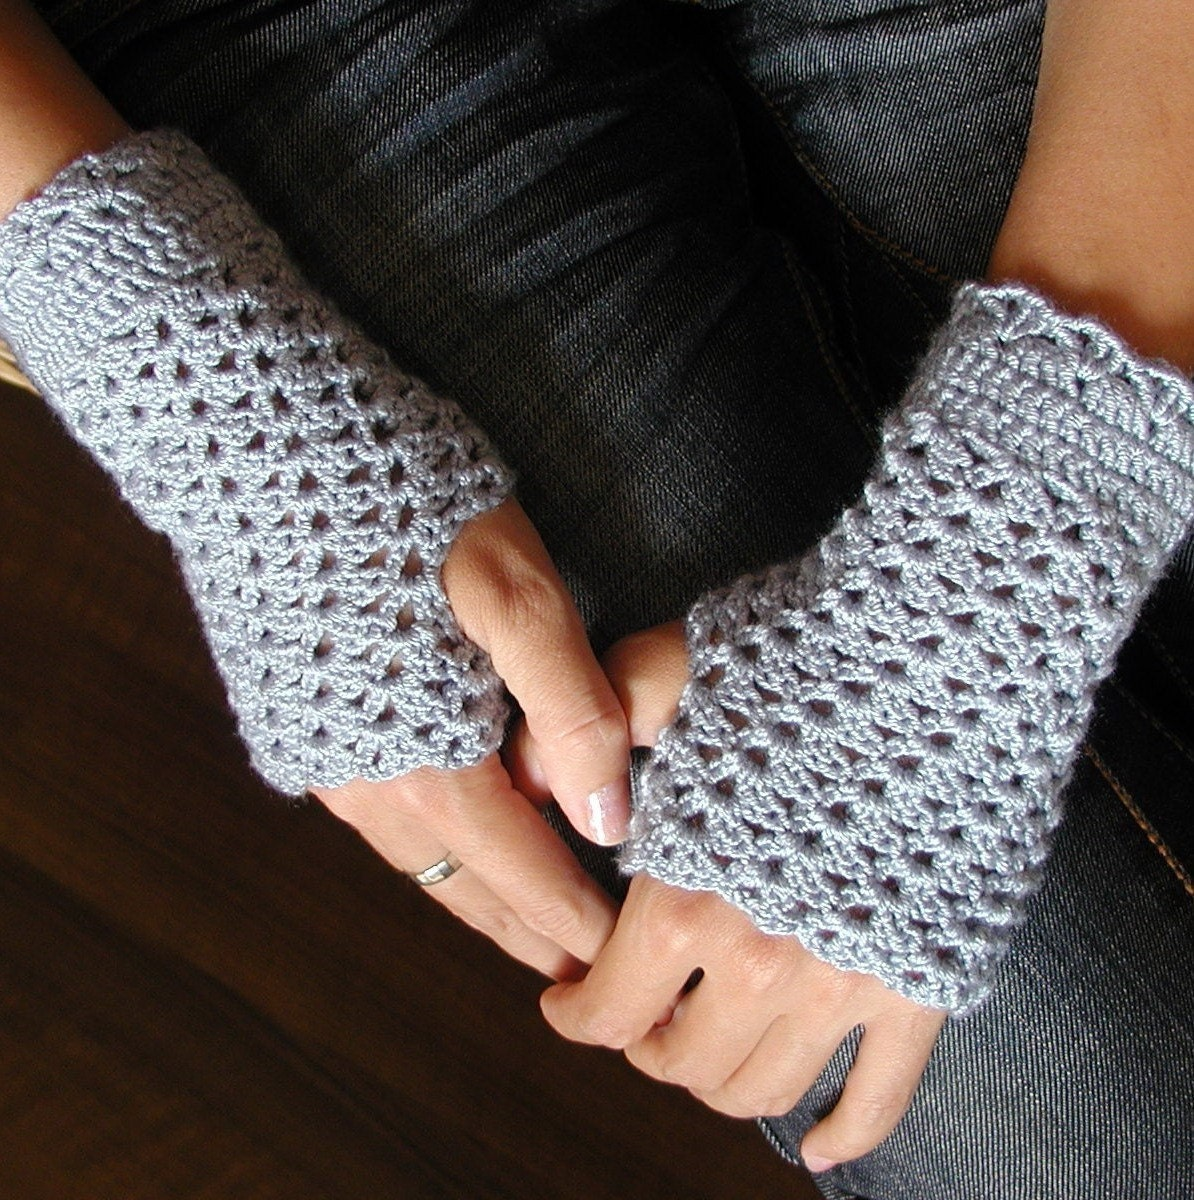 Crochet Patterns Gloves : Crocheted Fingerless Mittens PDF Crochet Pattern by FrougesArt